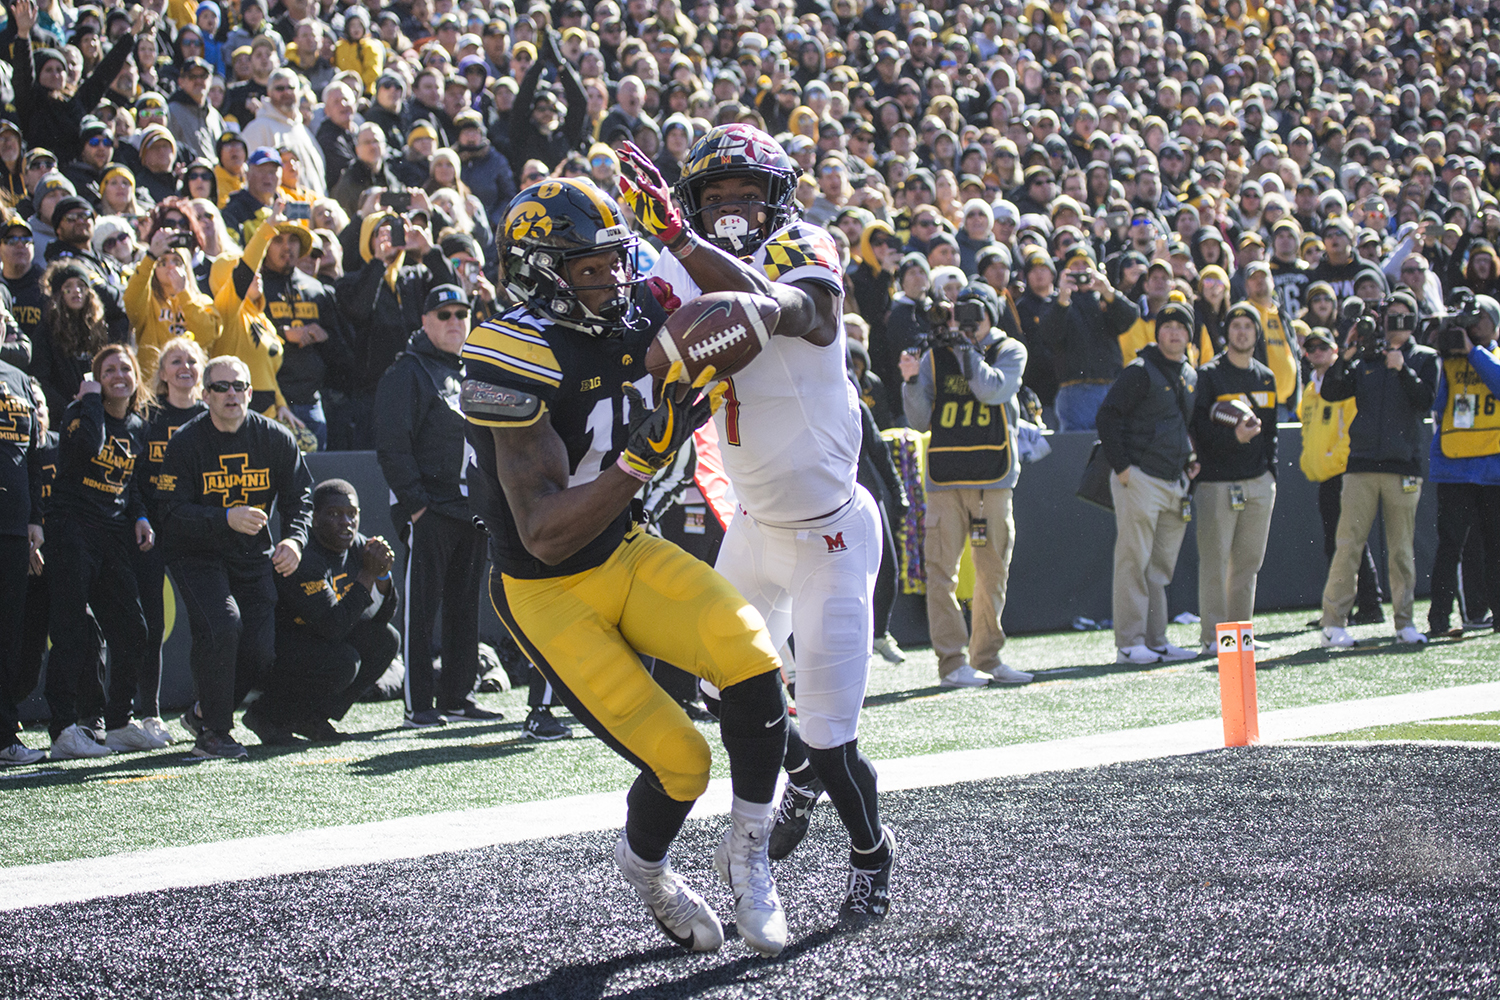 Iowa WR Brandon Smith hauls in a touchdown pass during a football game between Iowa and Maryland in Kinnick Stadium on Saturday, October 20, 2018. (Shivansh Ahuja/The Daily Iowan)